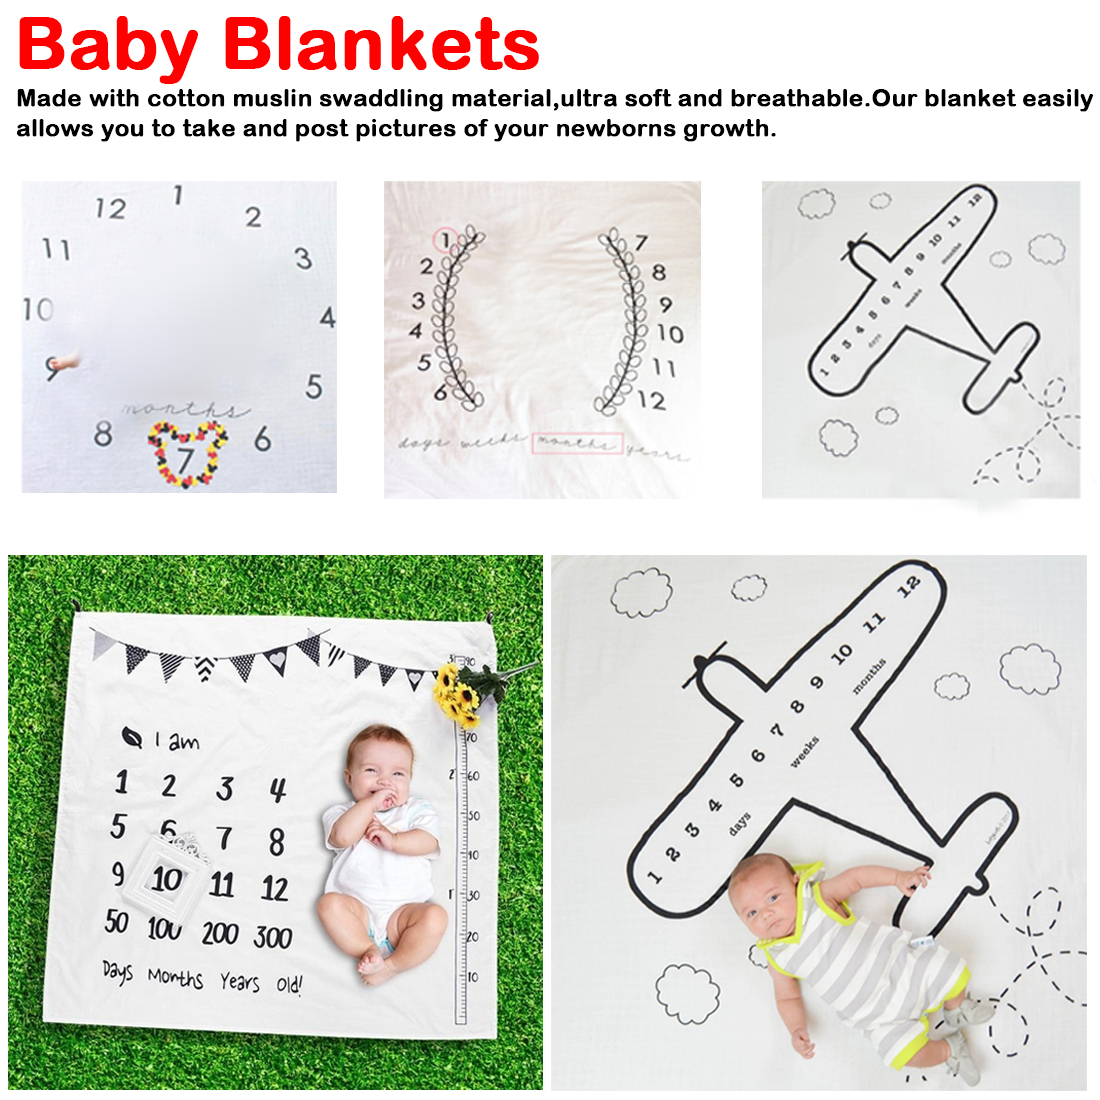 Newborn Baby 12 Month Growth Photography Background Cloth Props Cotton Blanket